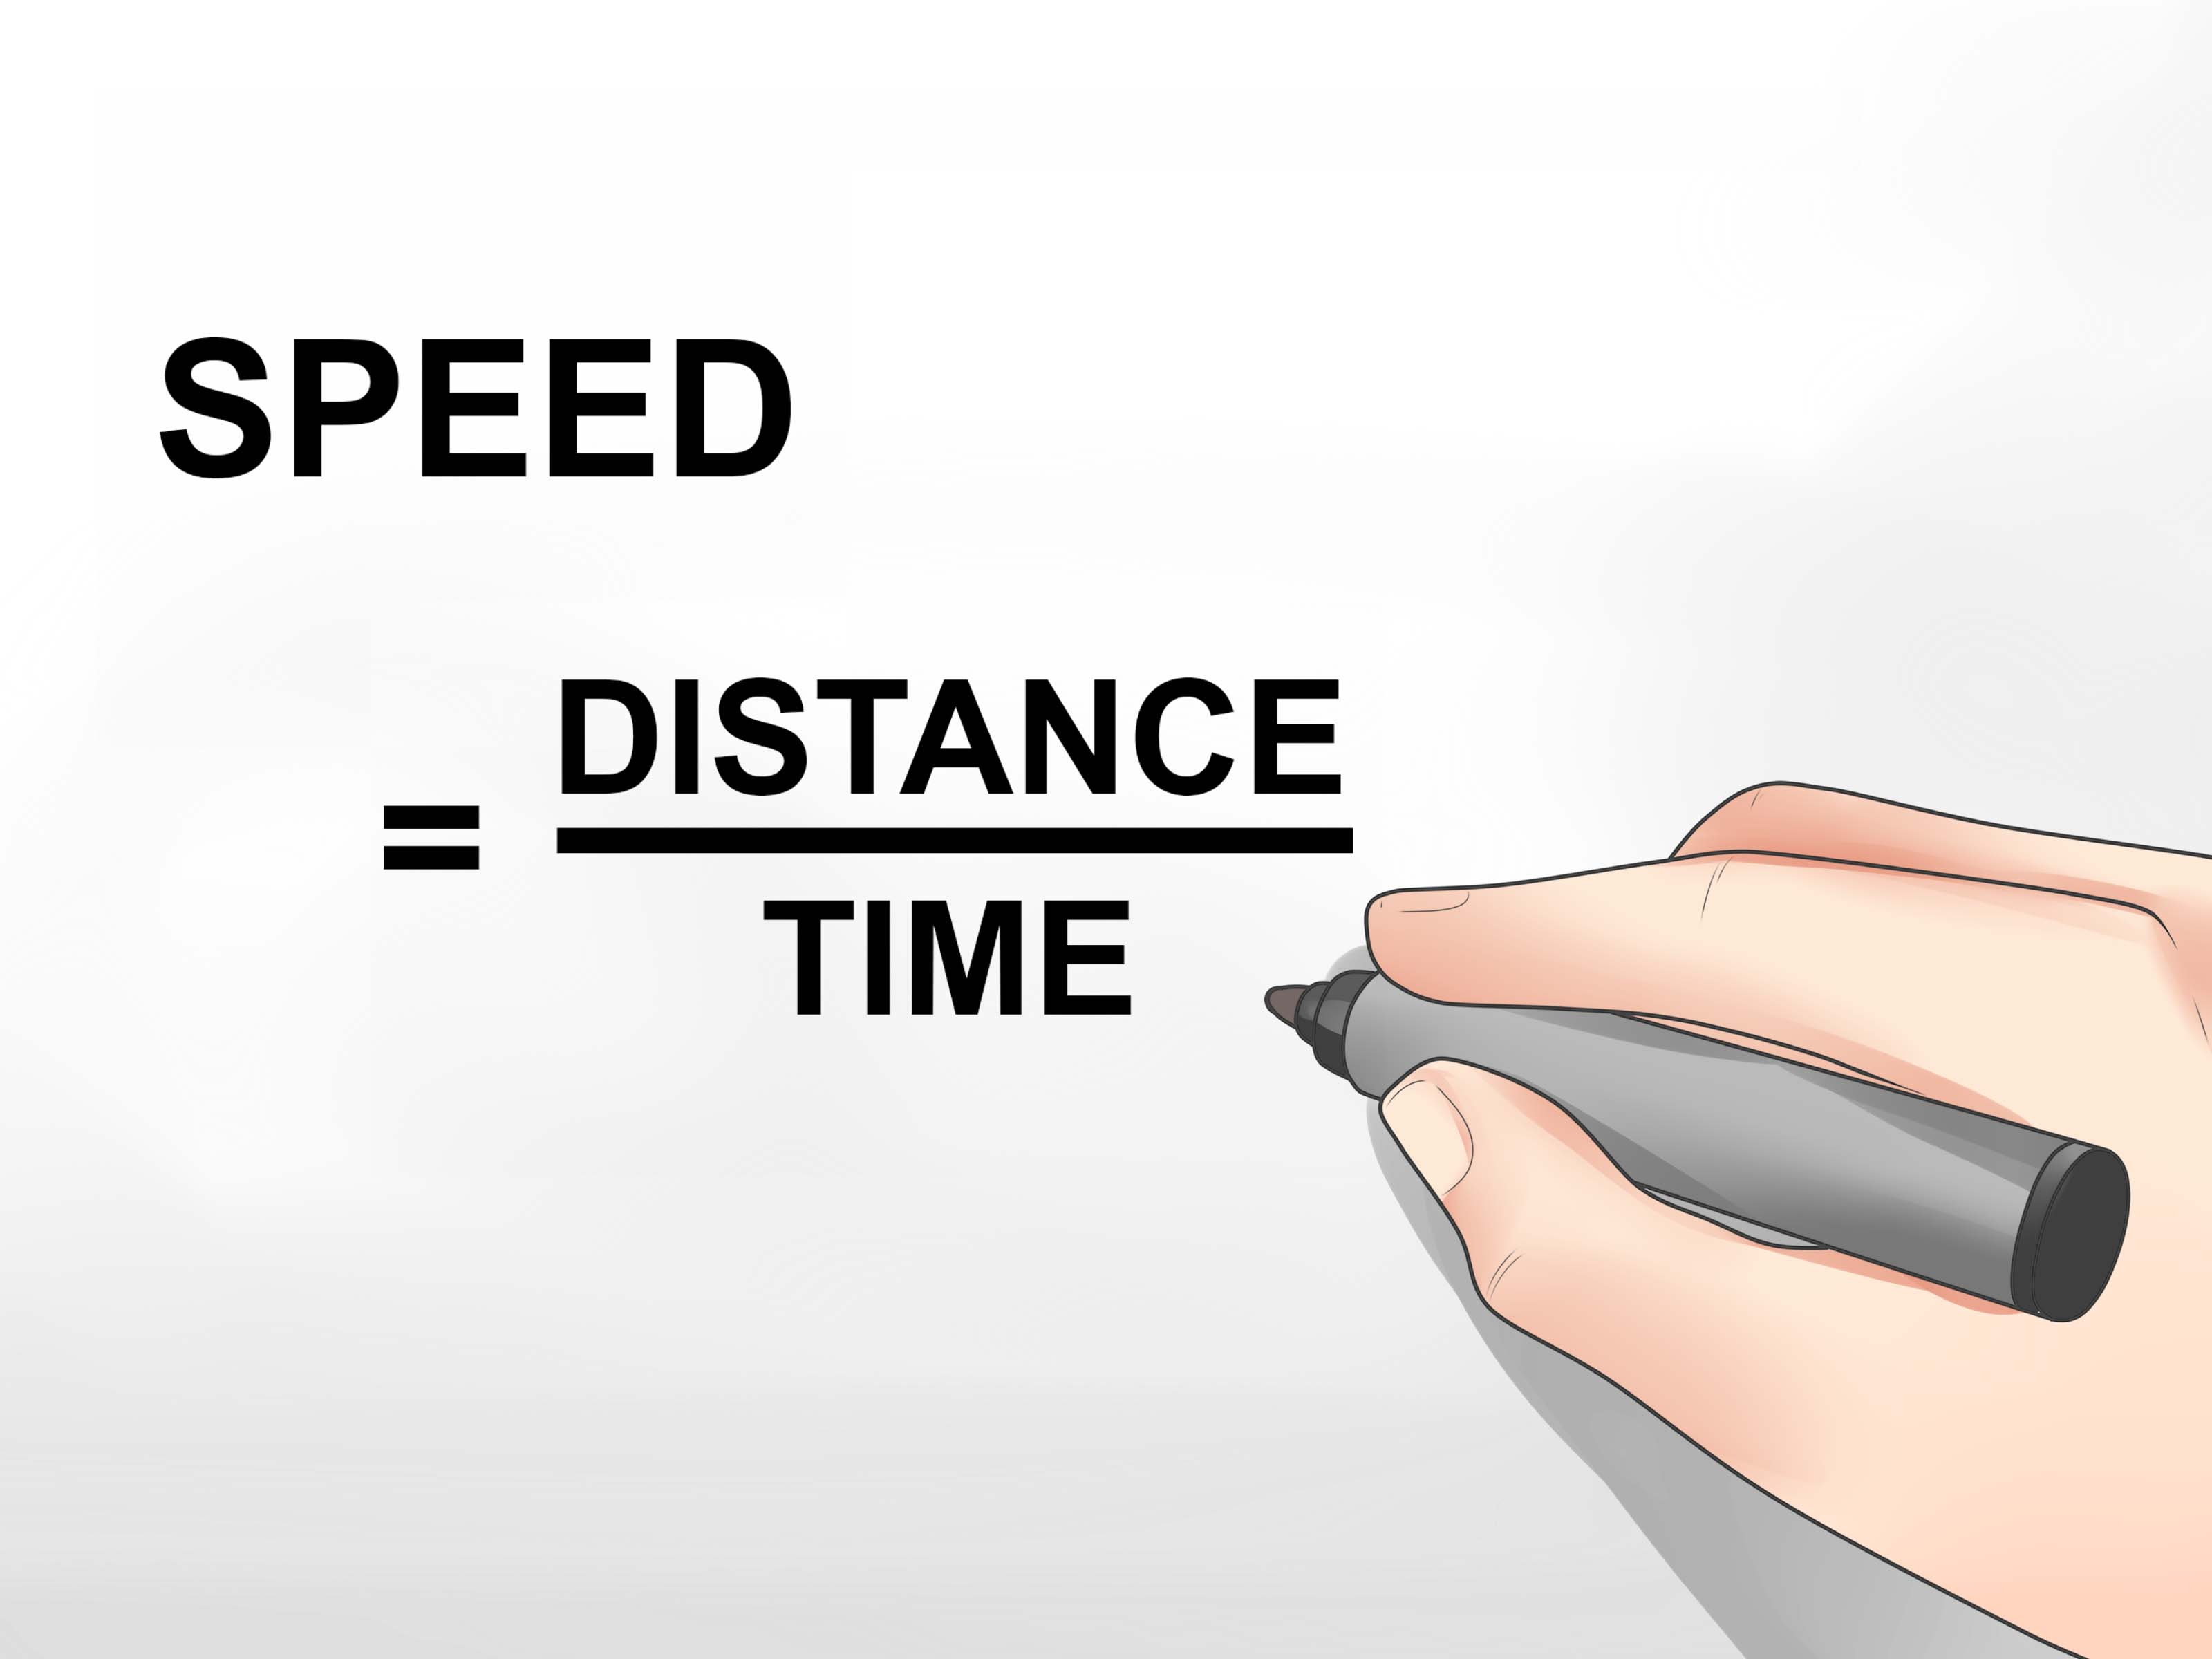 5 Simple Ways To Calculate Average Speed